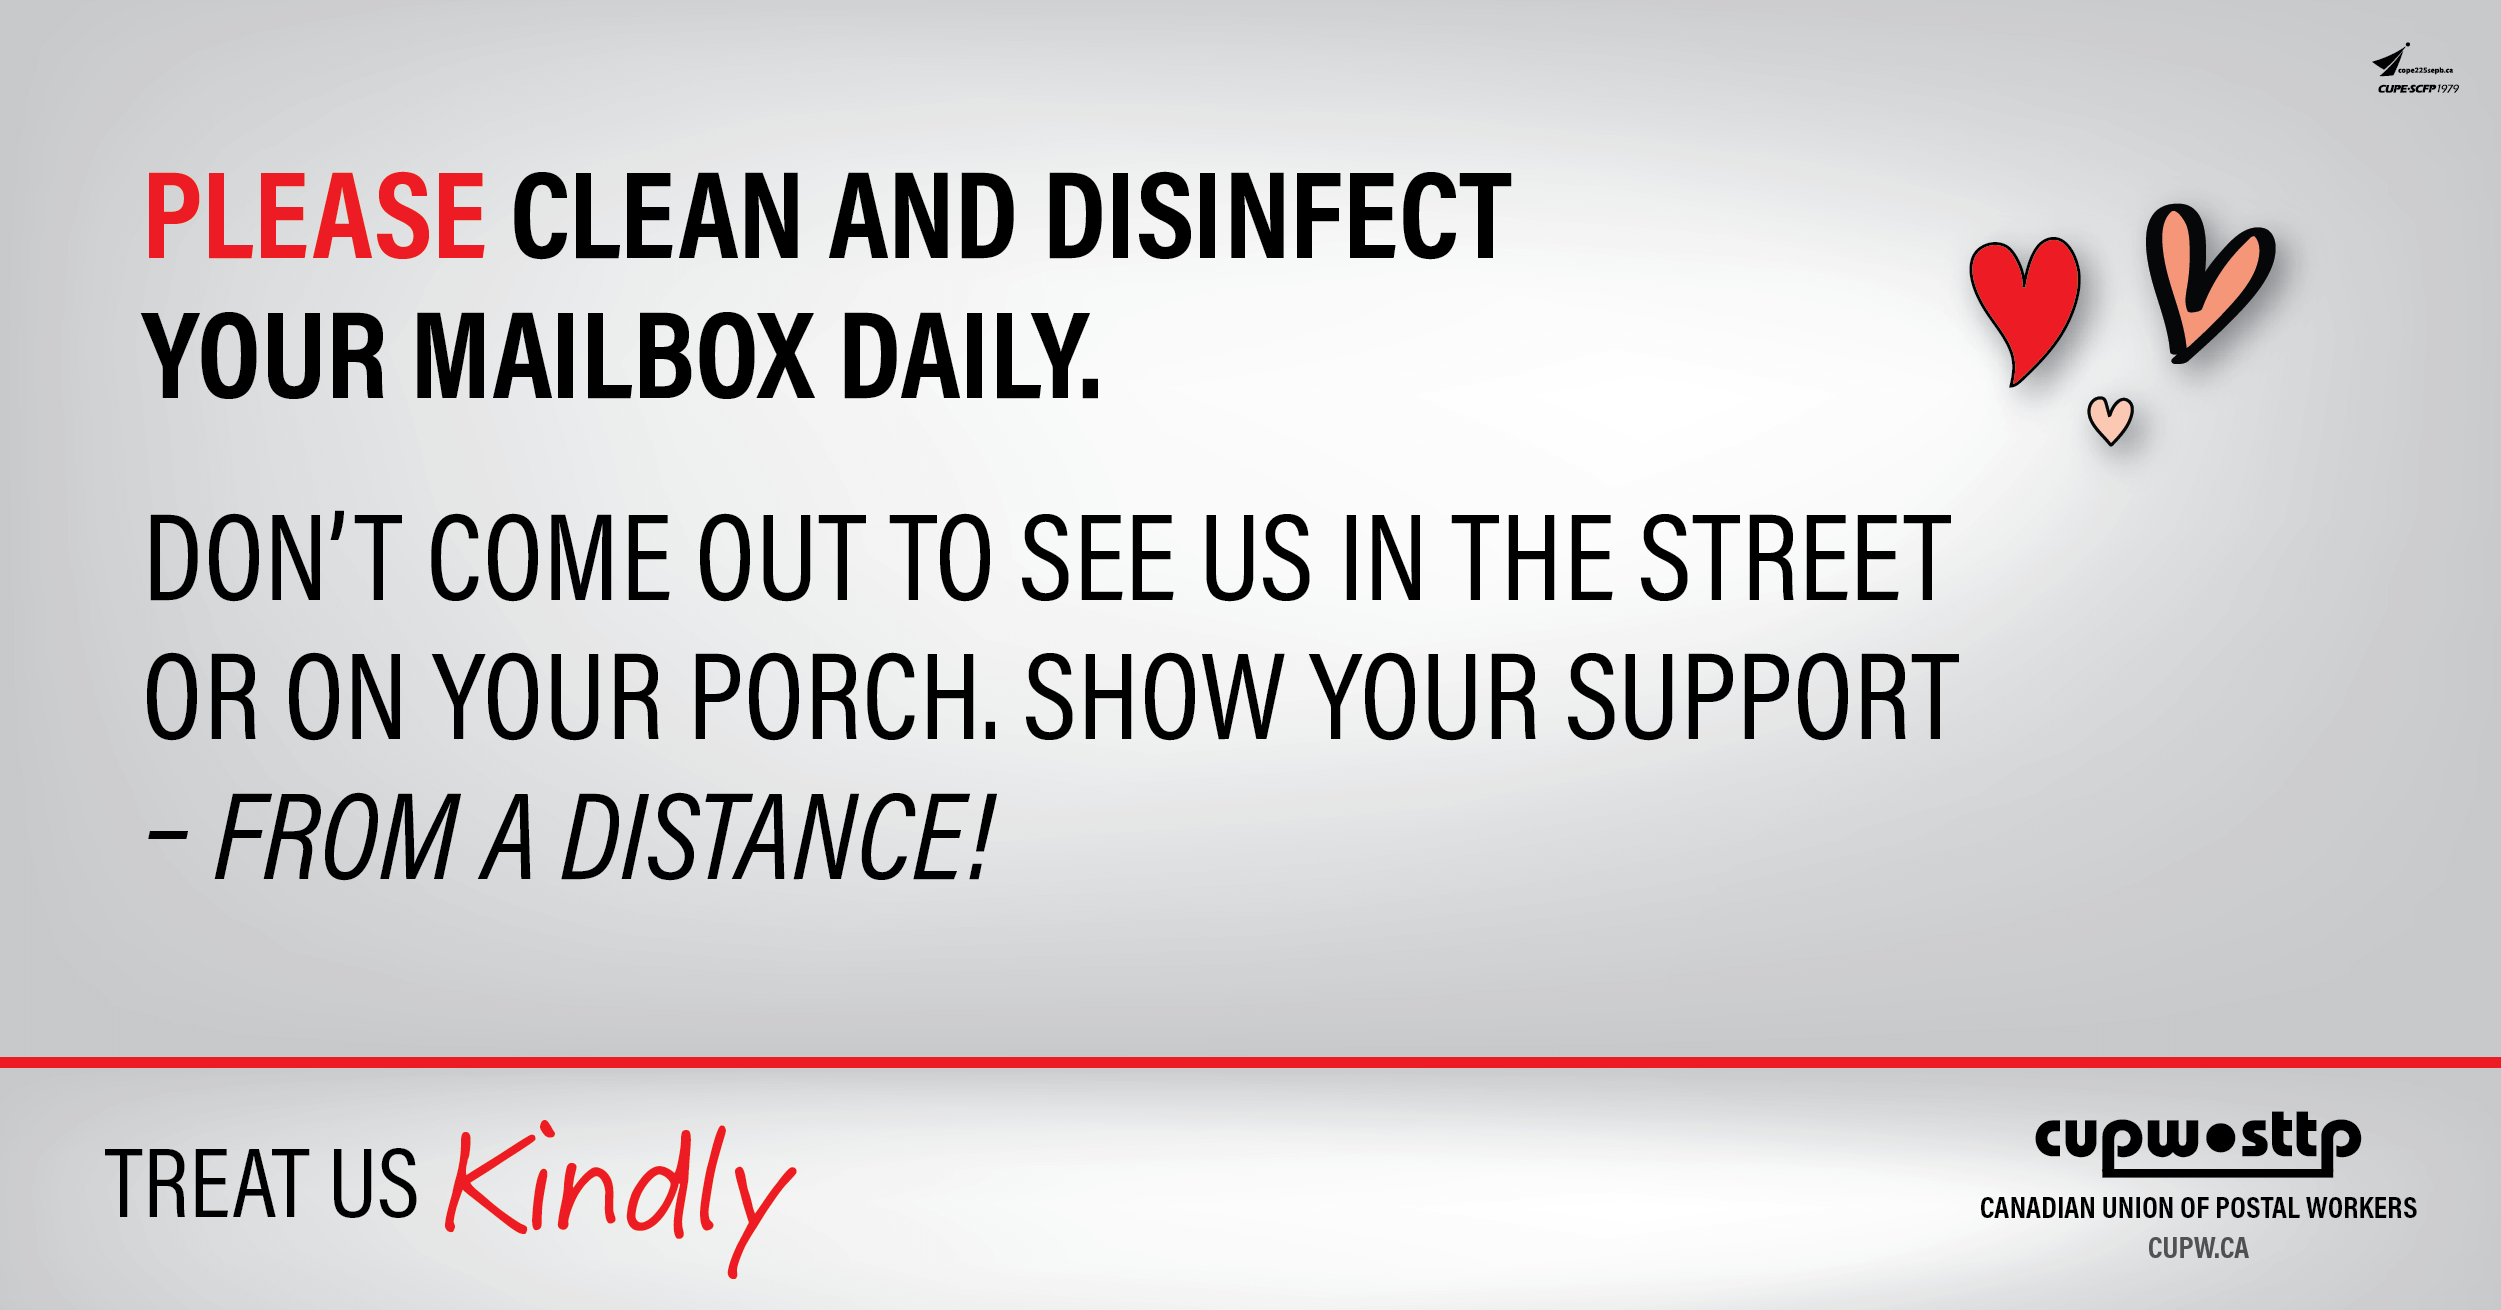 Please clean and disinfect your mailbox daily